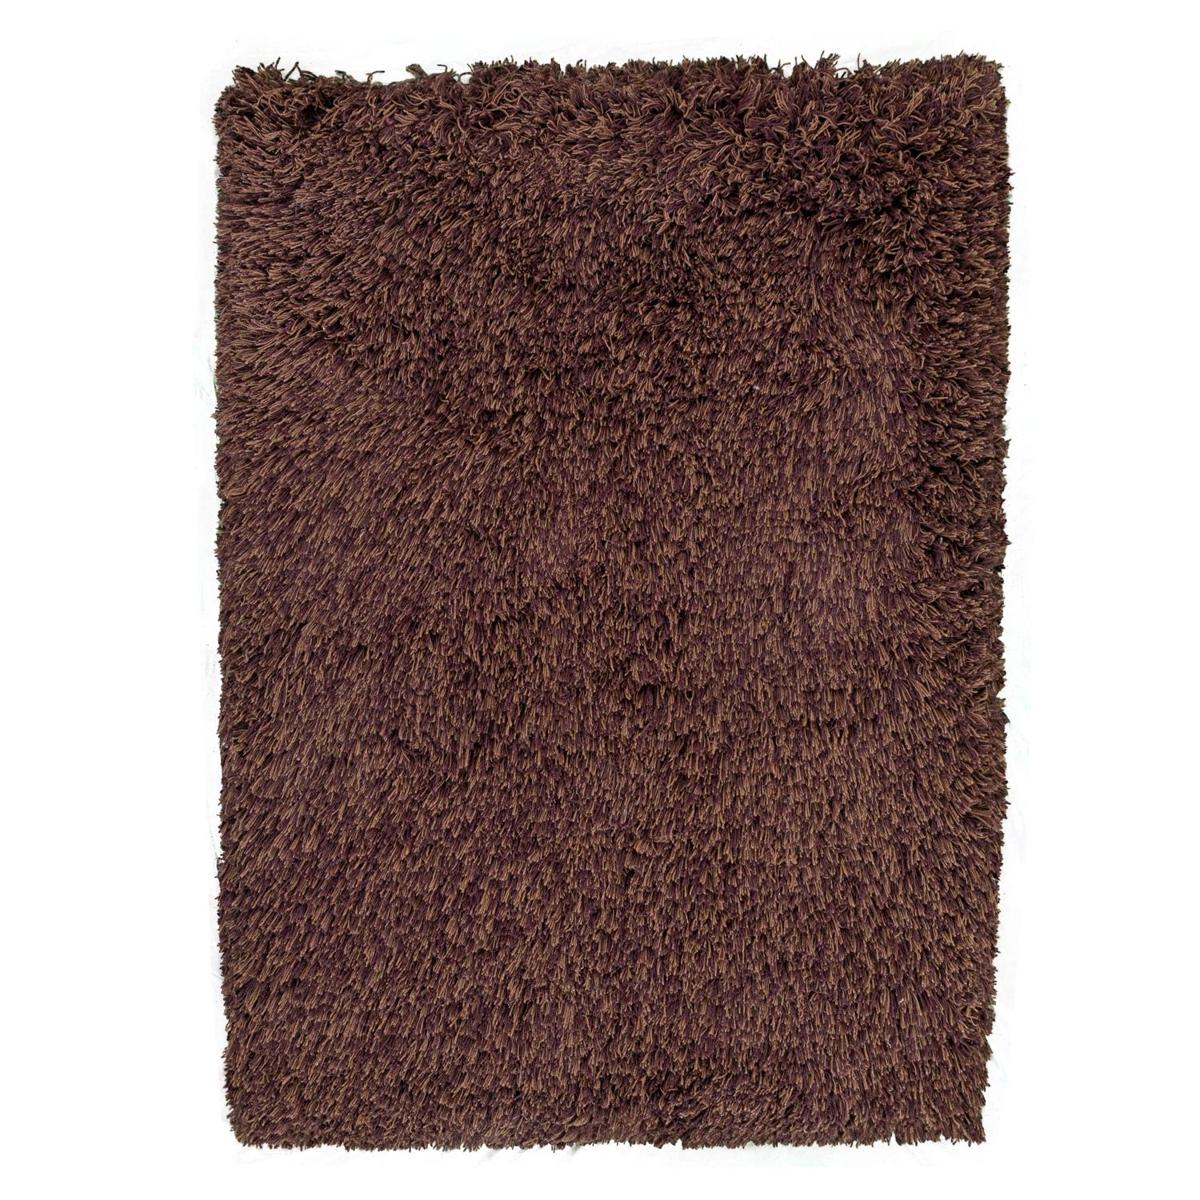 Highlander Shaggy Rug Mixed Brown 200x300cm 1